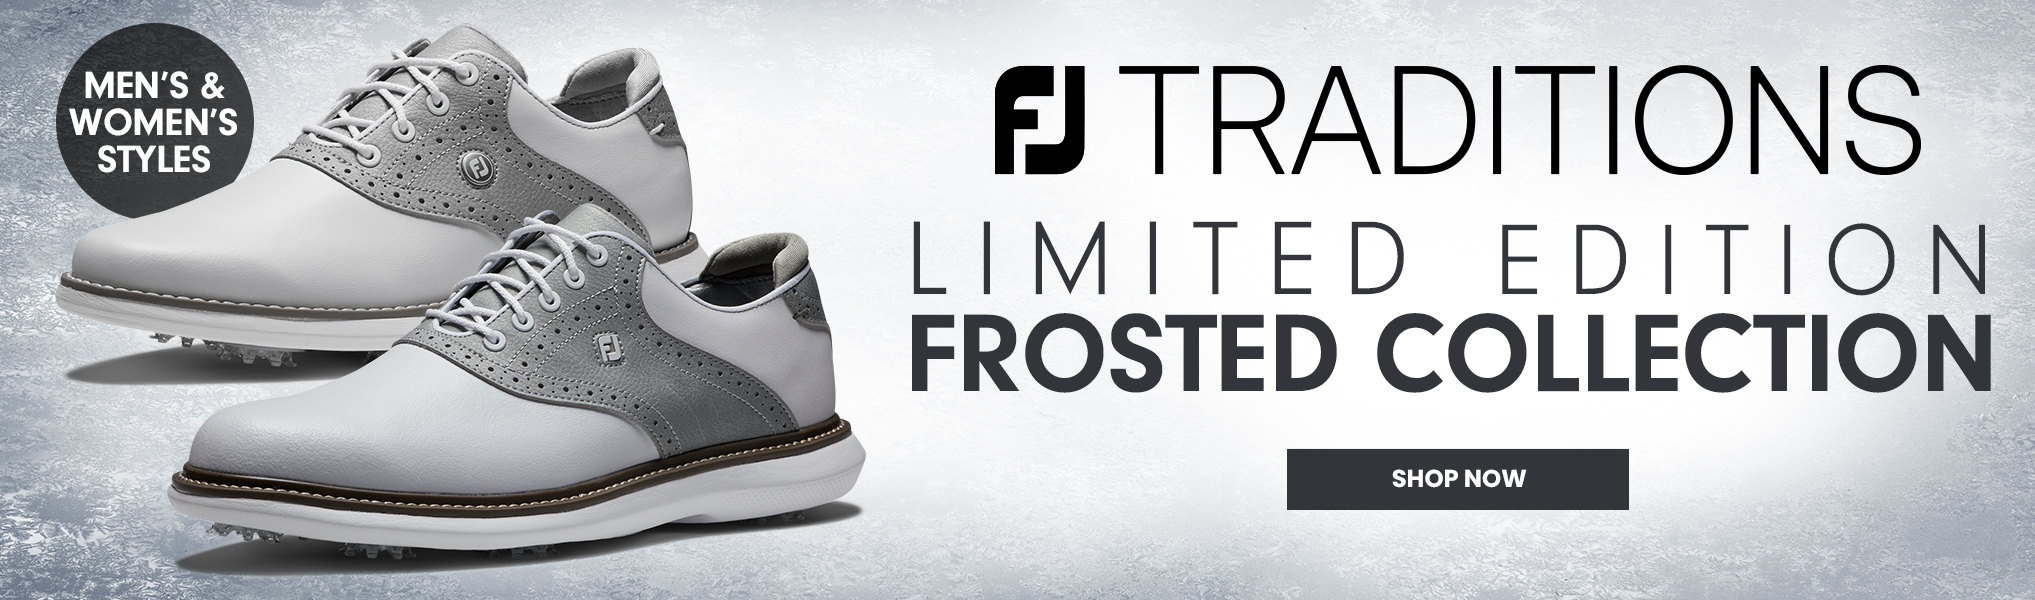 FJ Limited Edition Frosted Collection